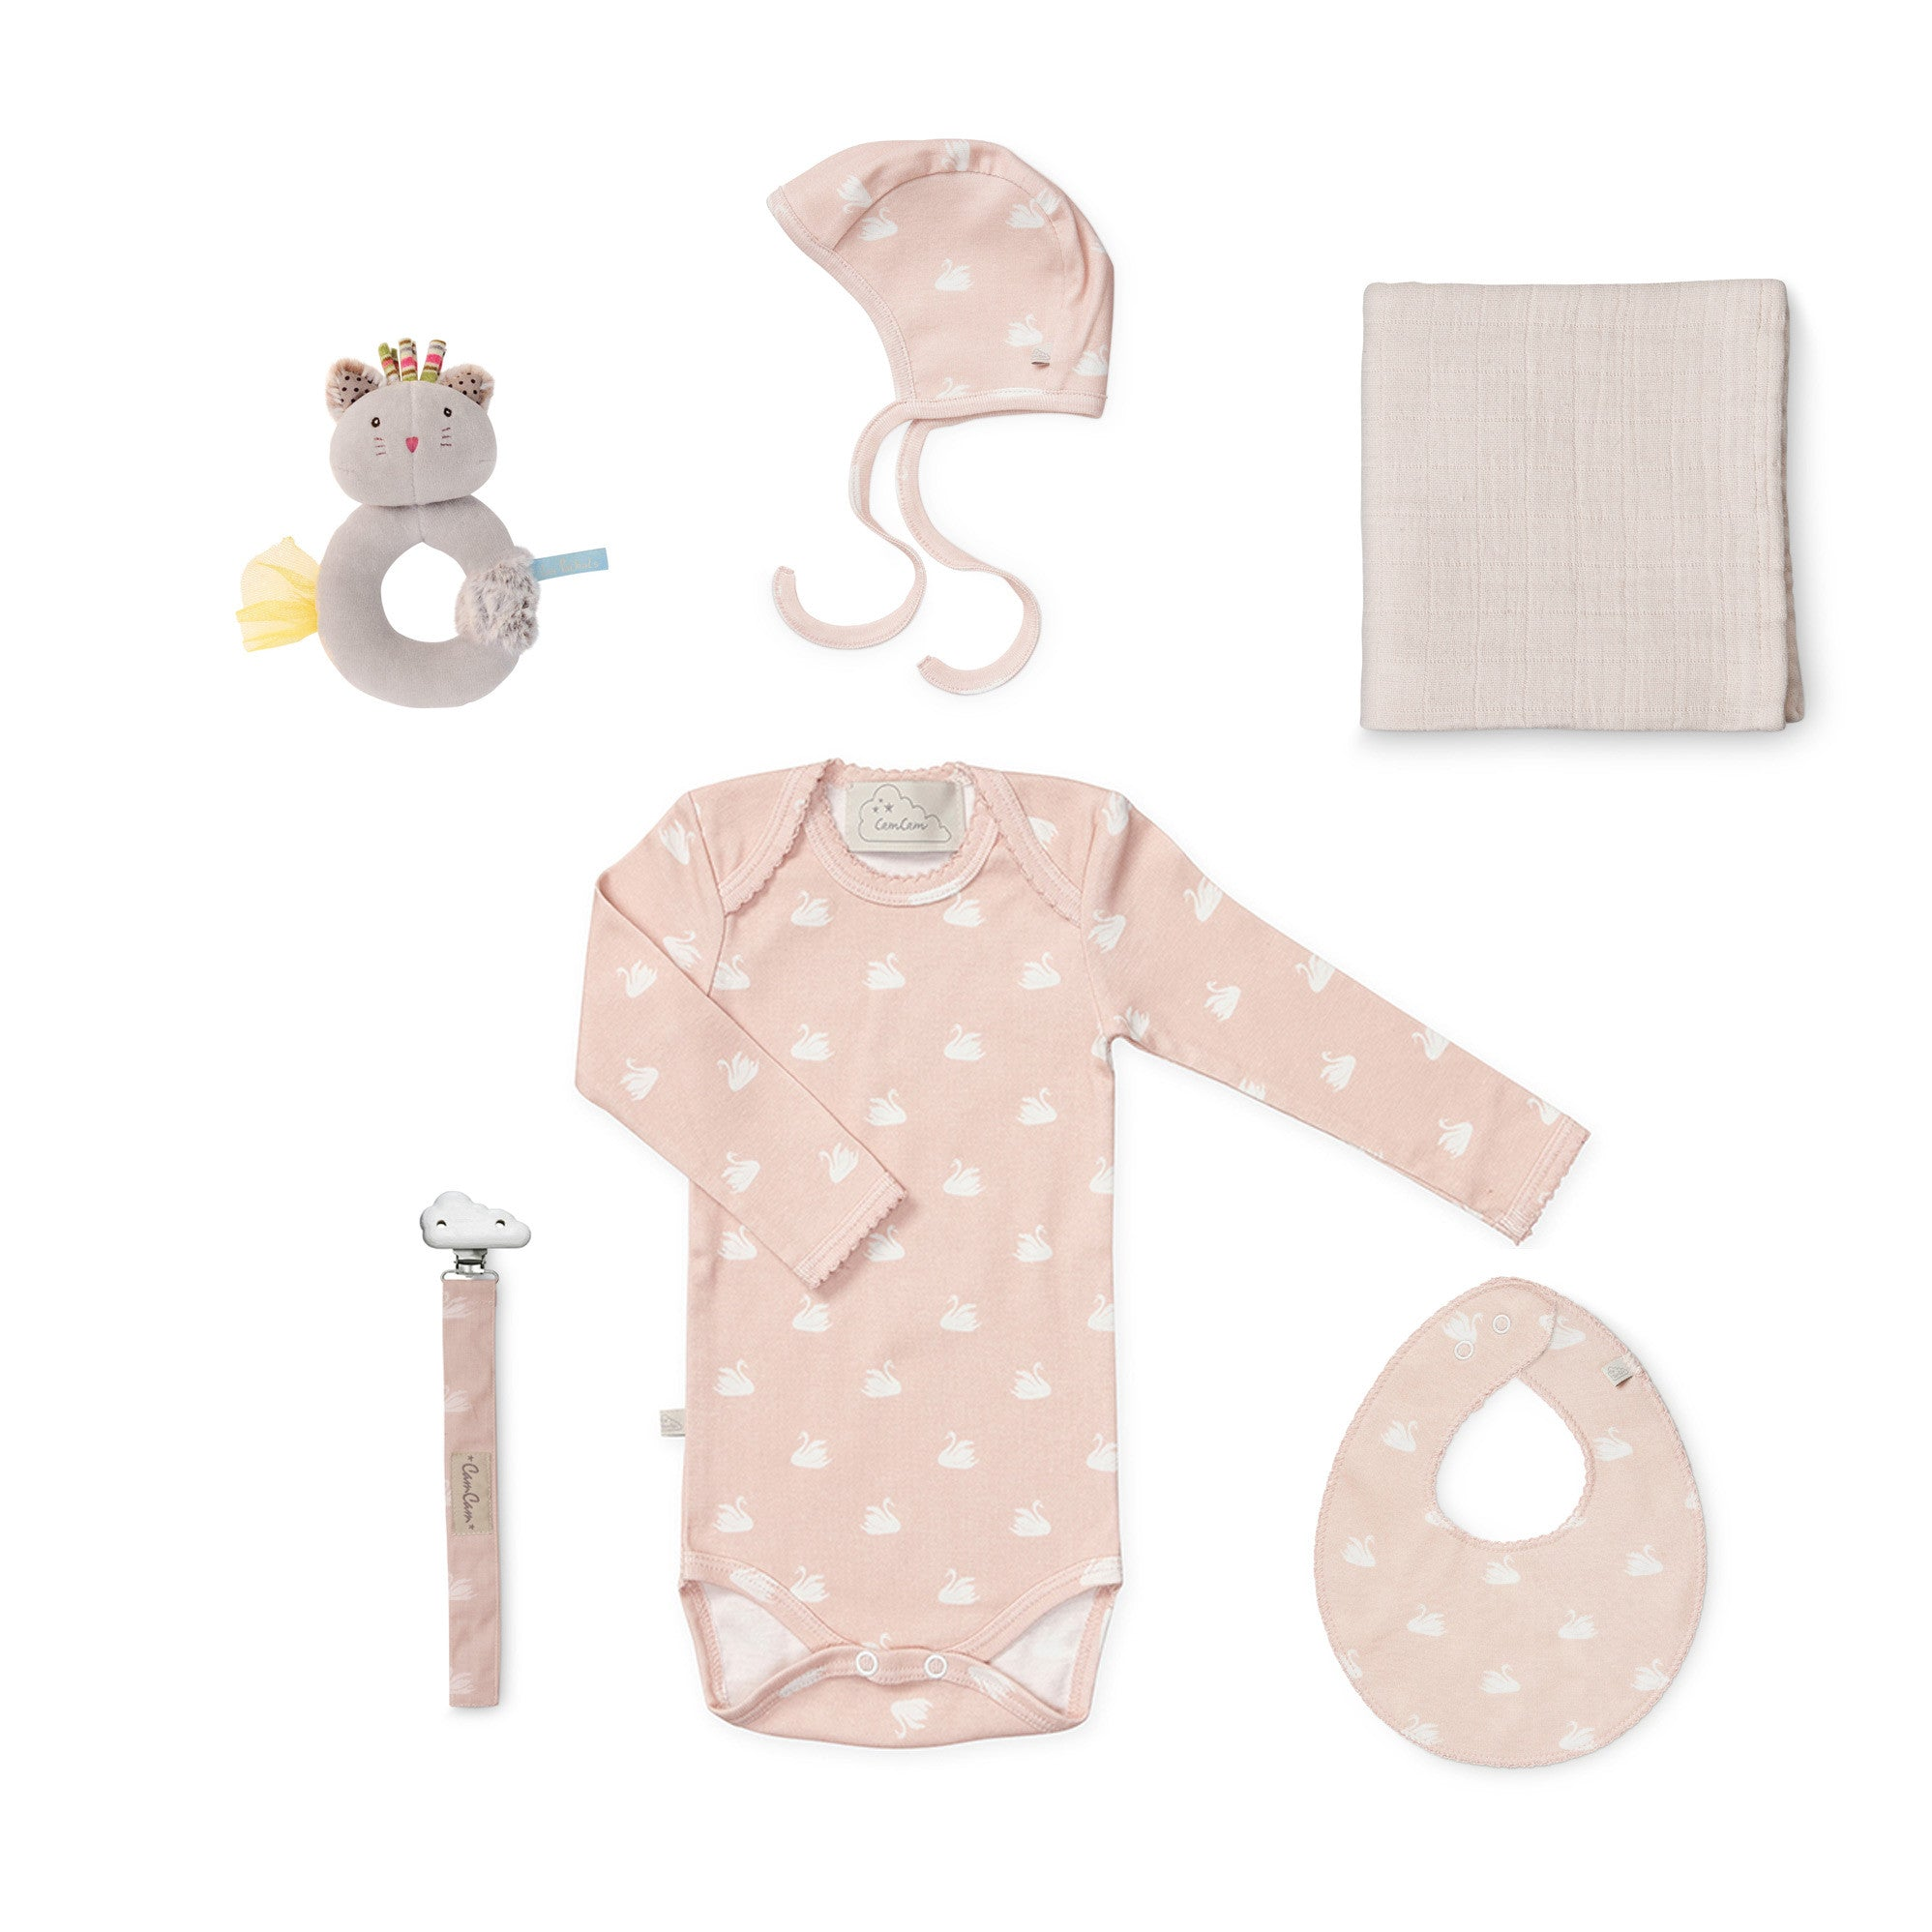 Organic Cotton Baby Set - Swans